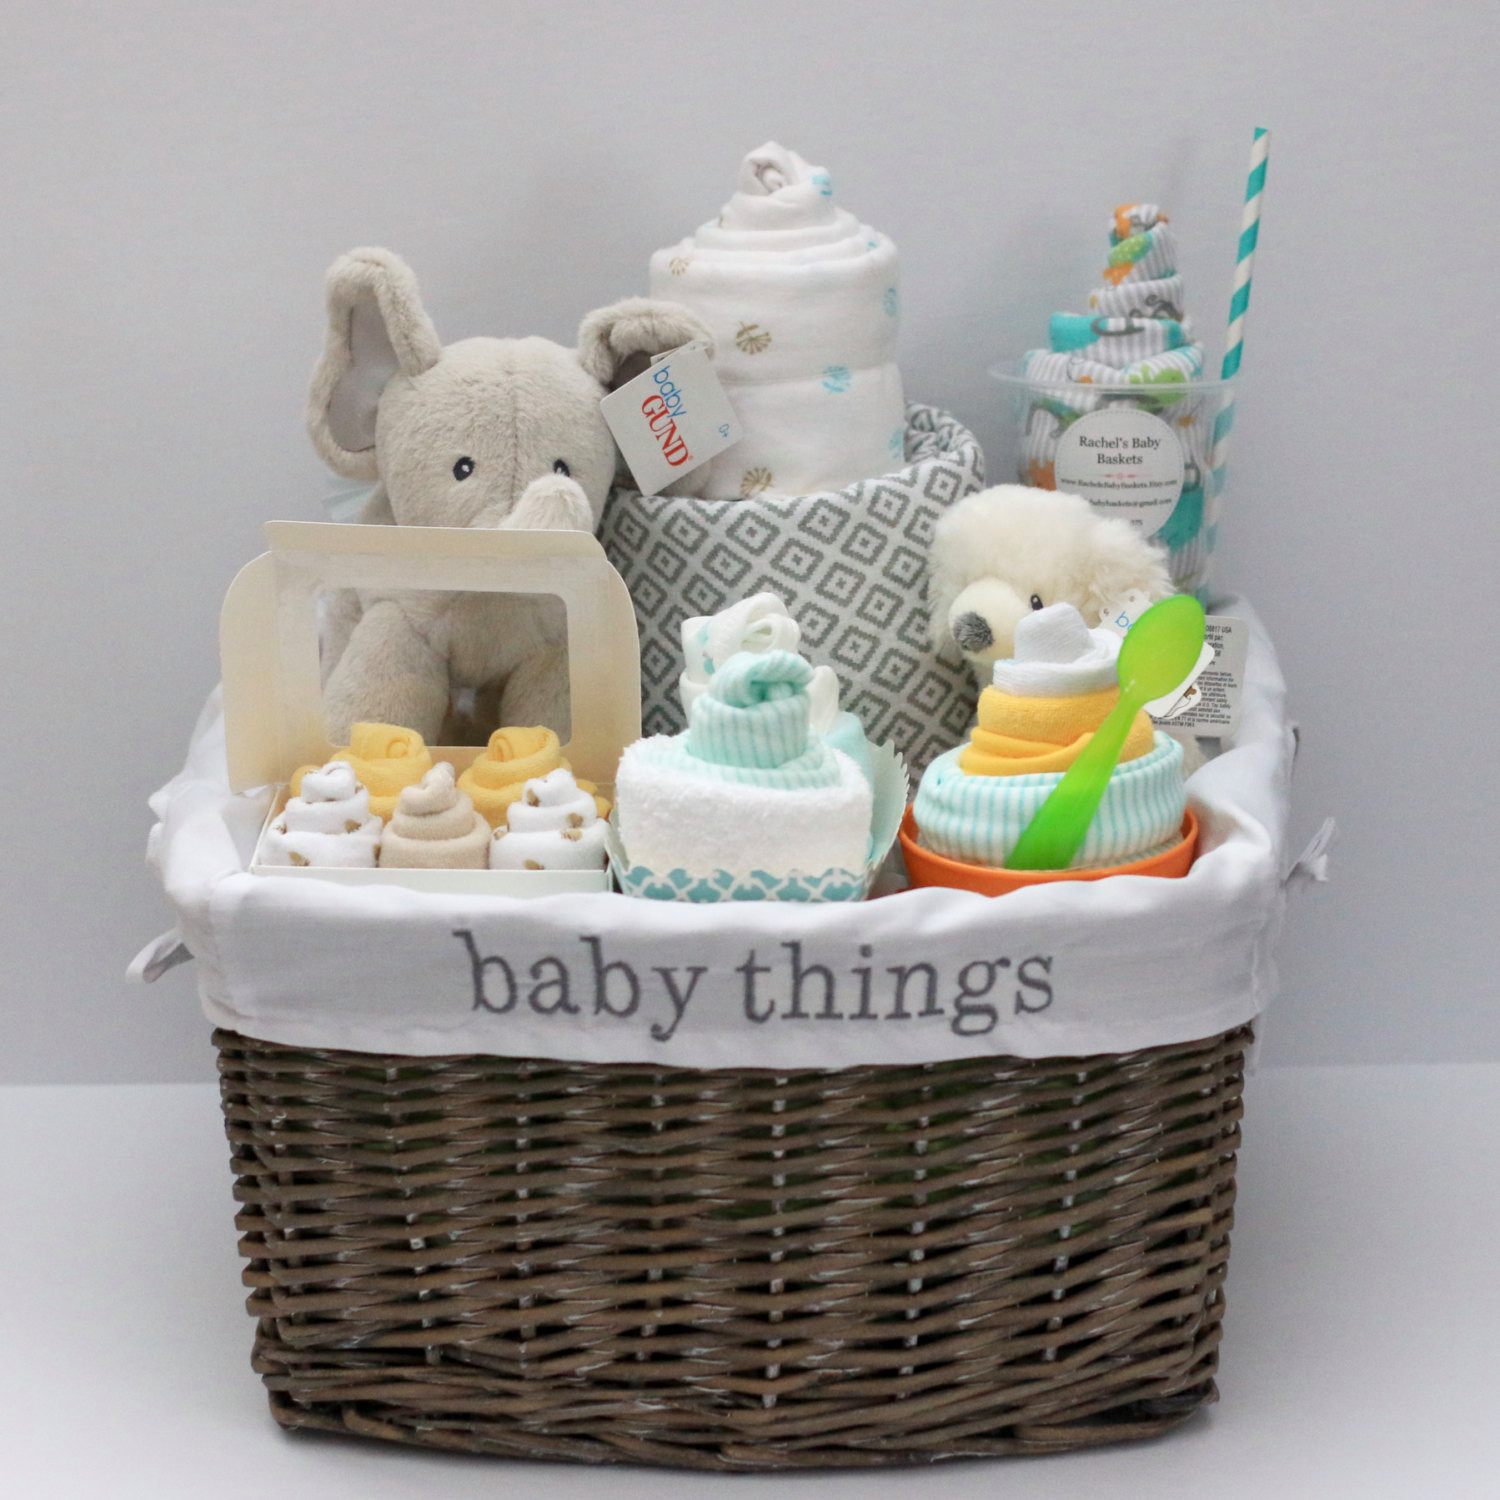 Personalized Baby Gift Ideas  Gender Neutral Baby Gift Basket Baby Shower Gift Unique Baby